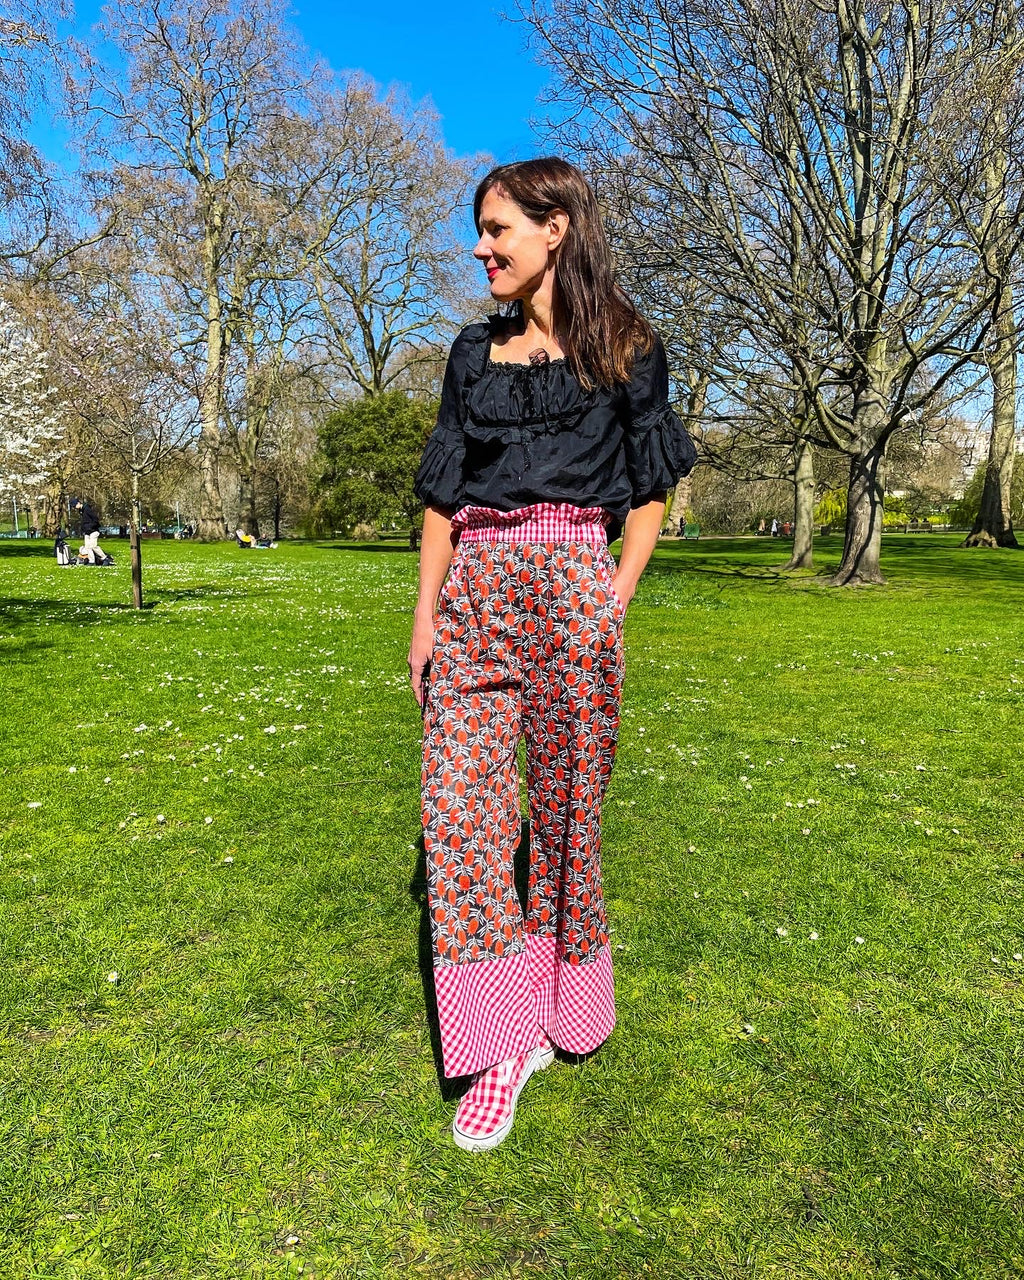 The 'Bottle Brush' trousers